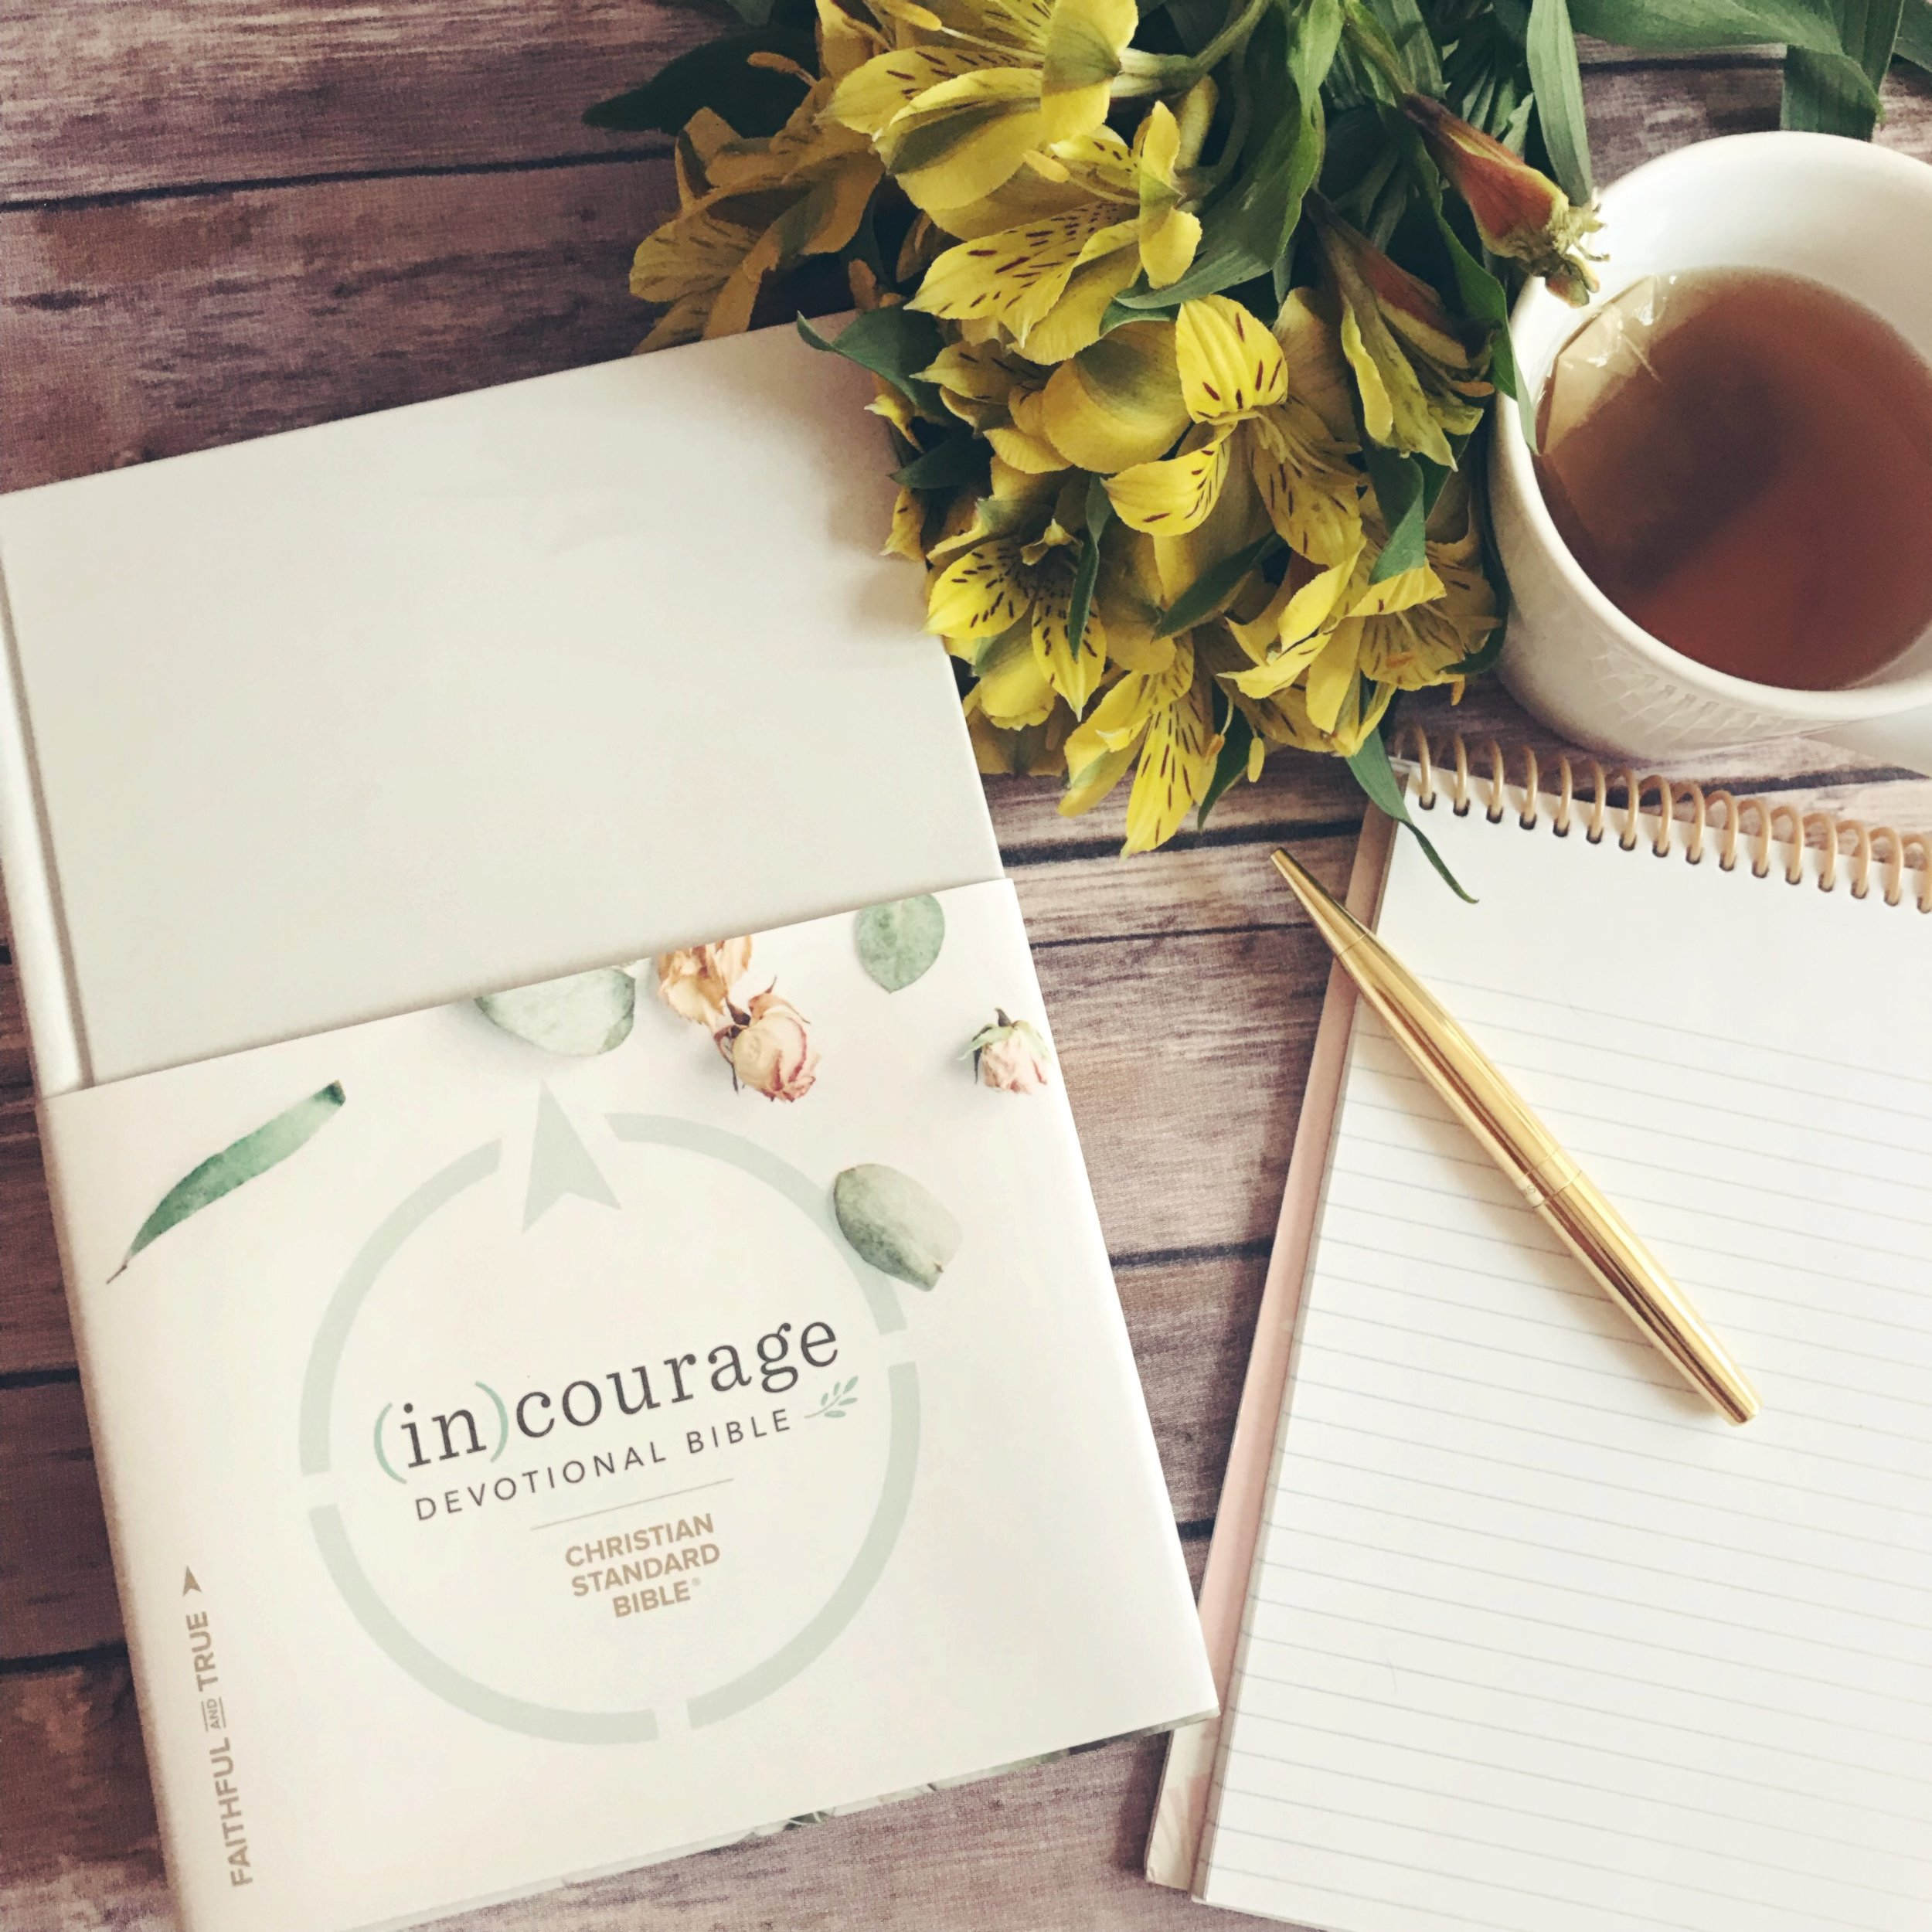 (IN) Courage Devotional Bible Review